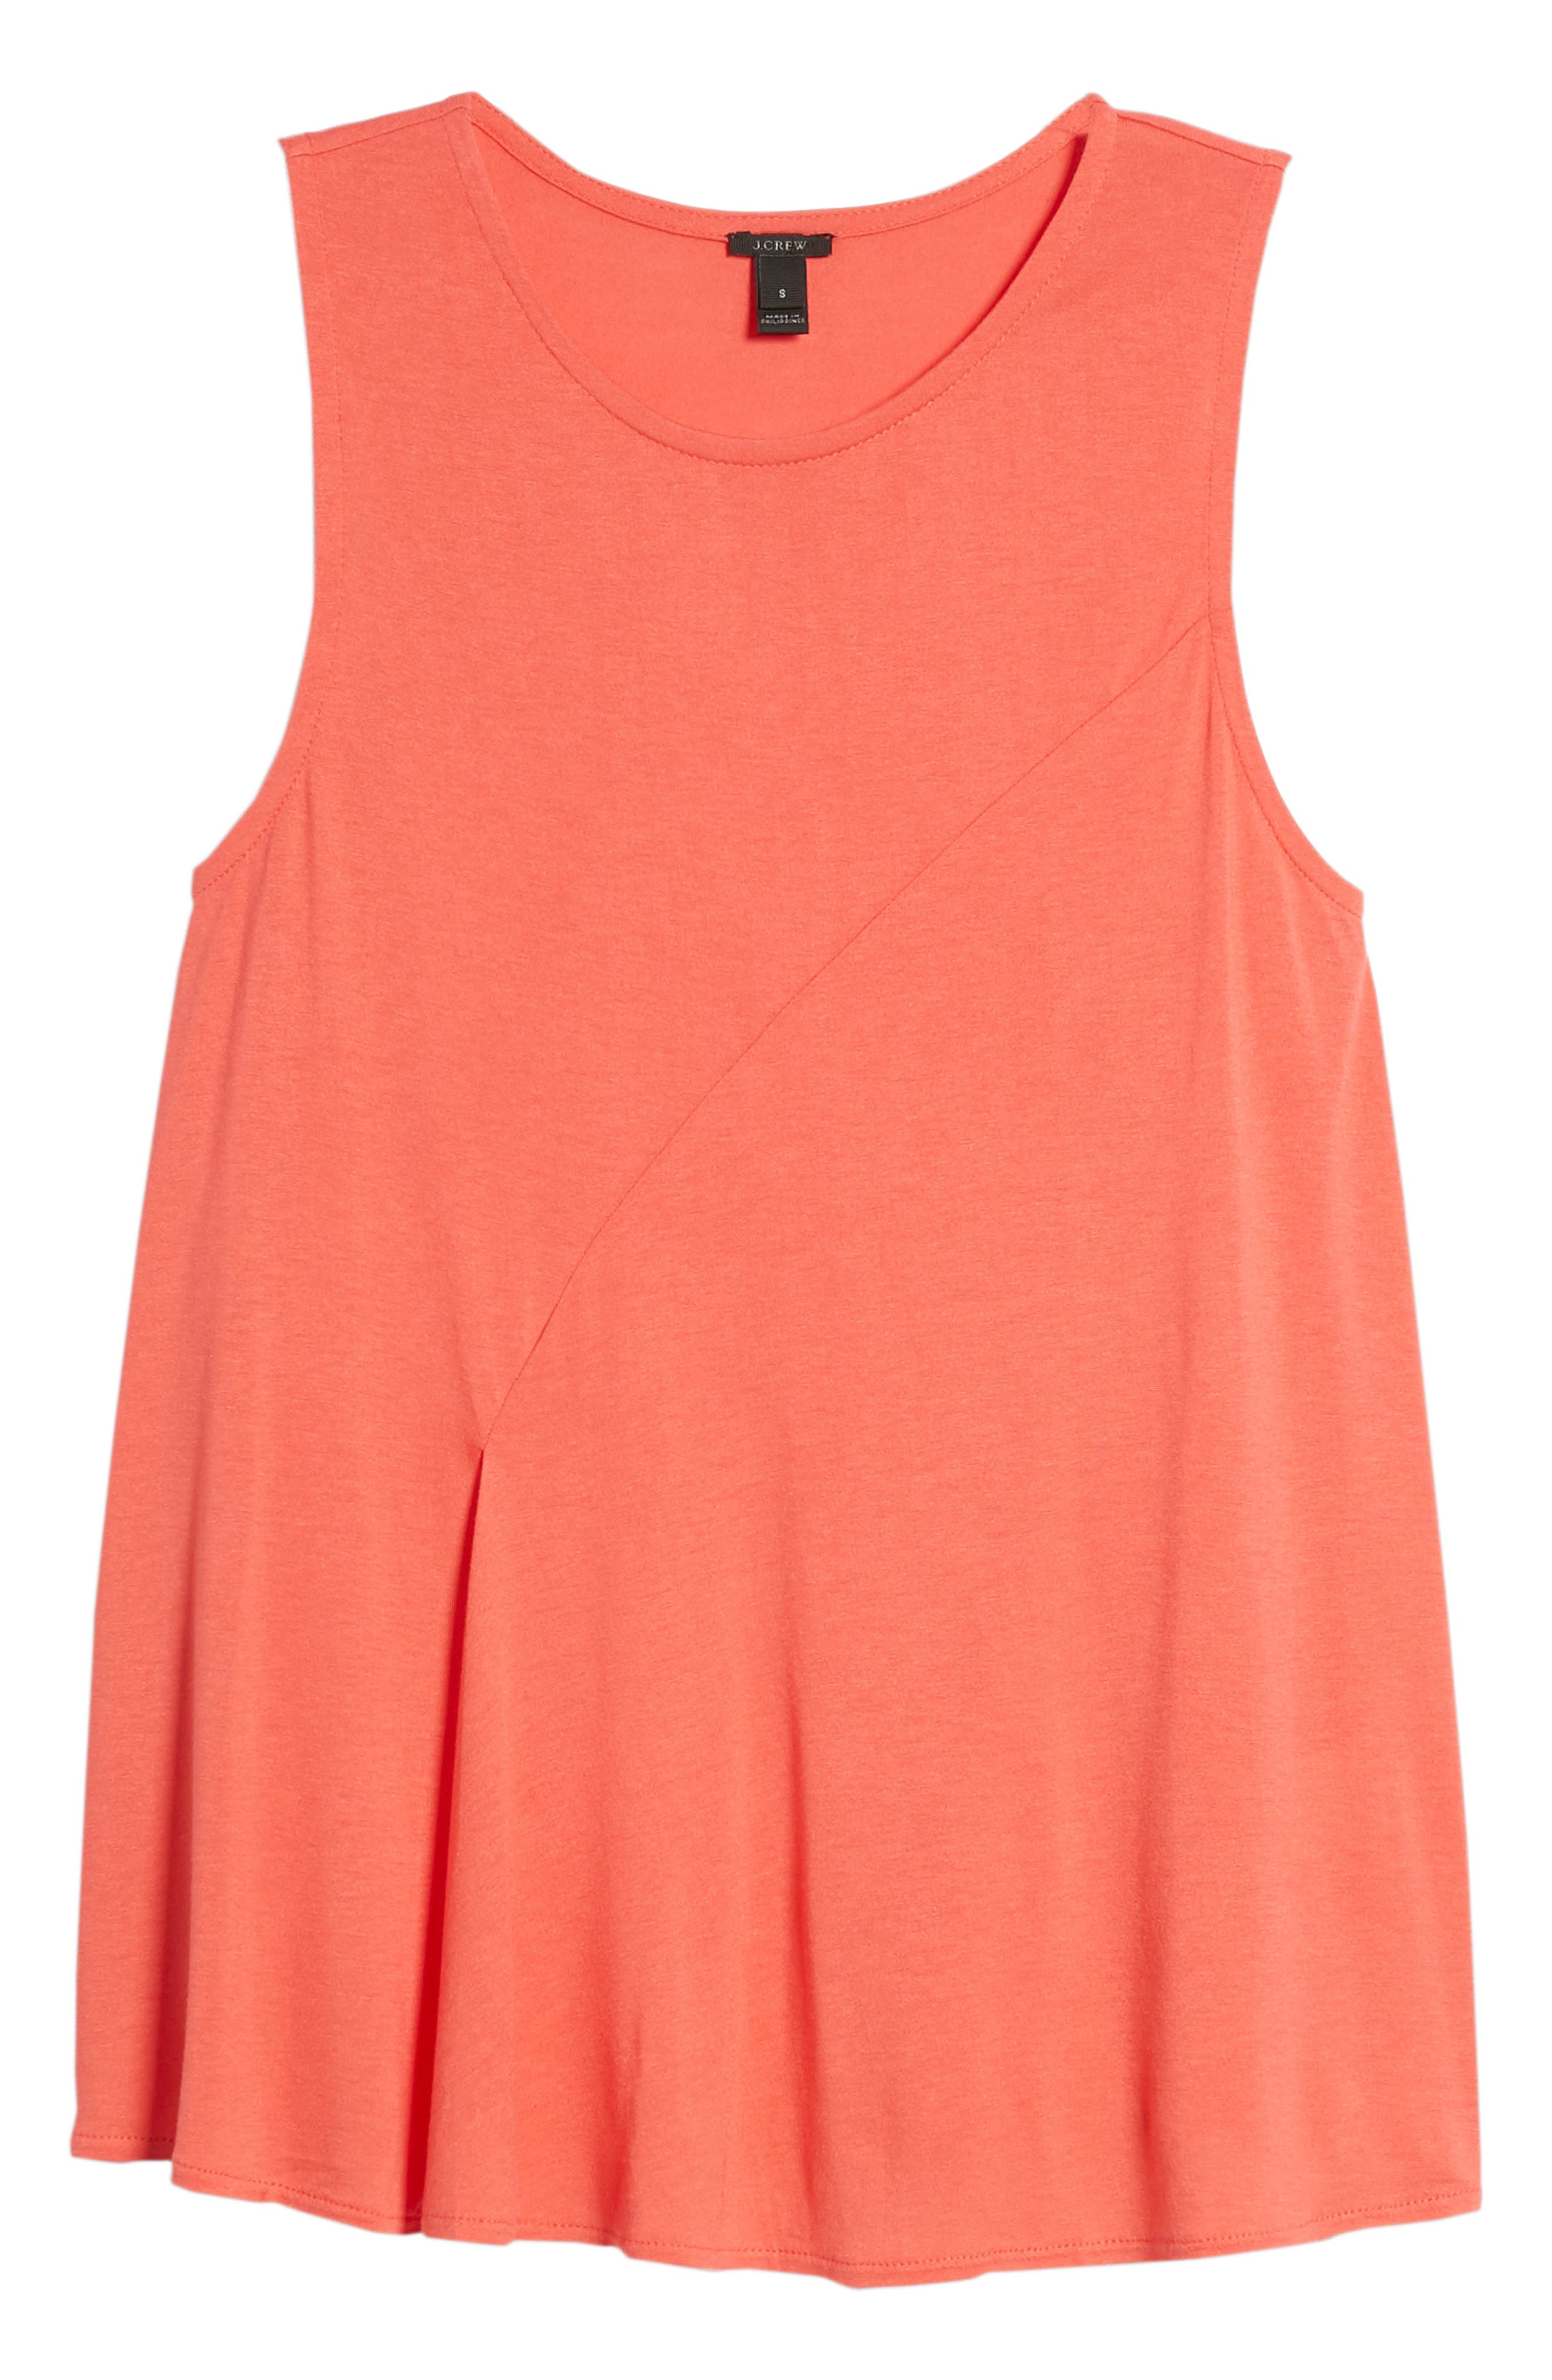 J.Crew Pleated Swing Tank Top,                             Alternate thumbnail 7, color,                             Coral